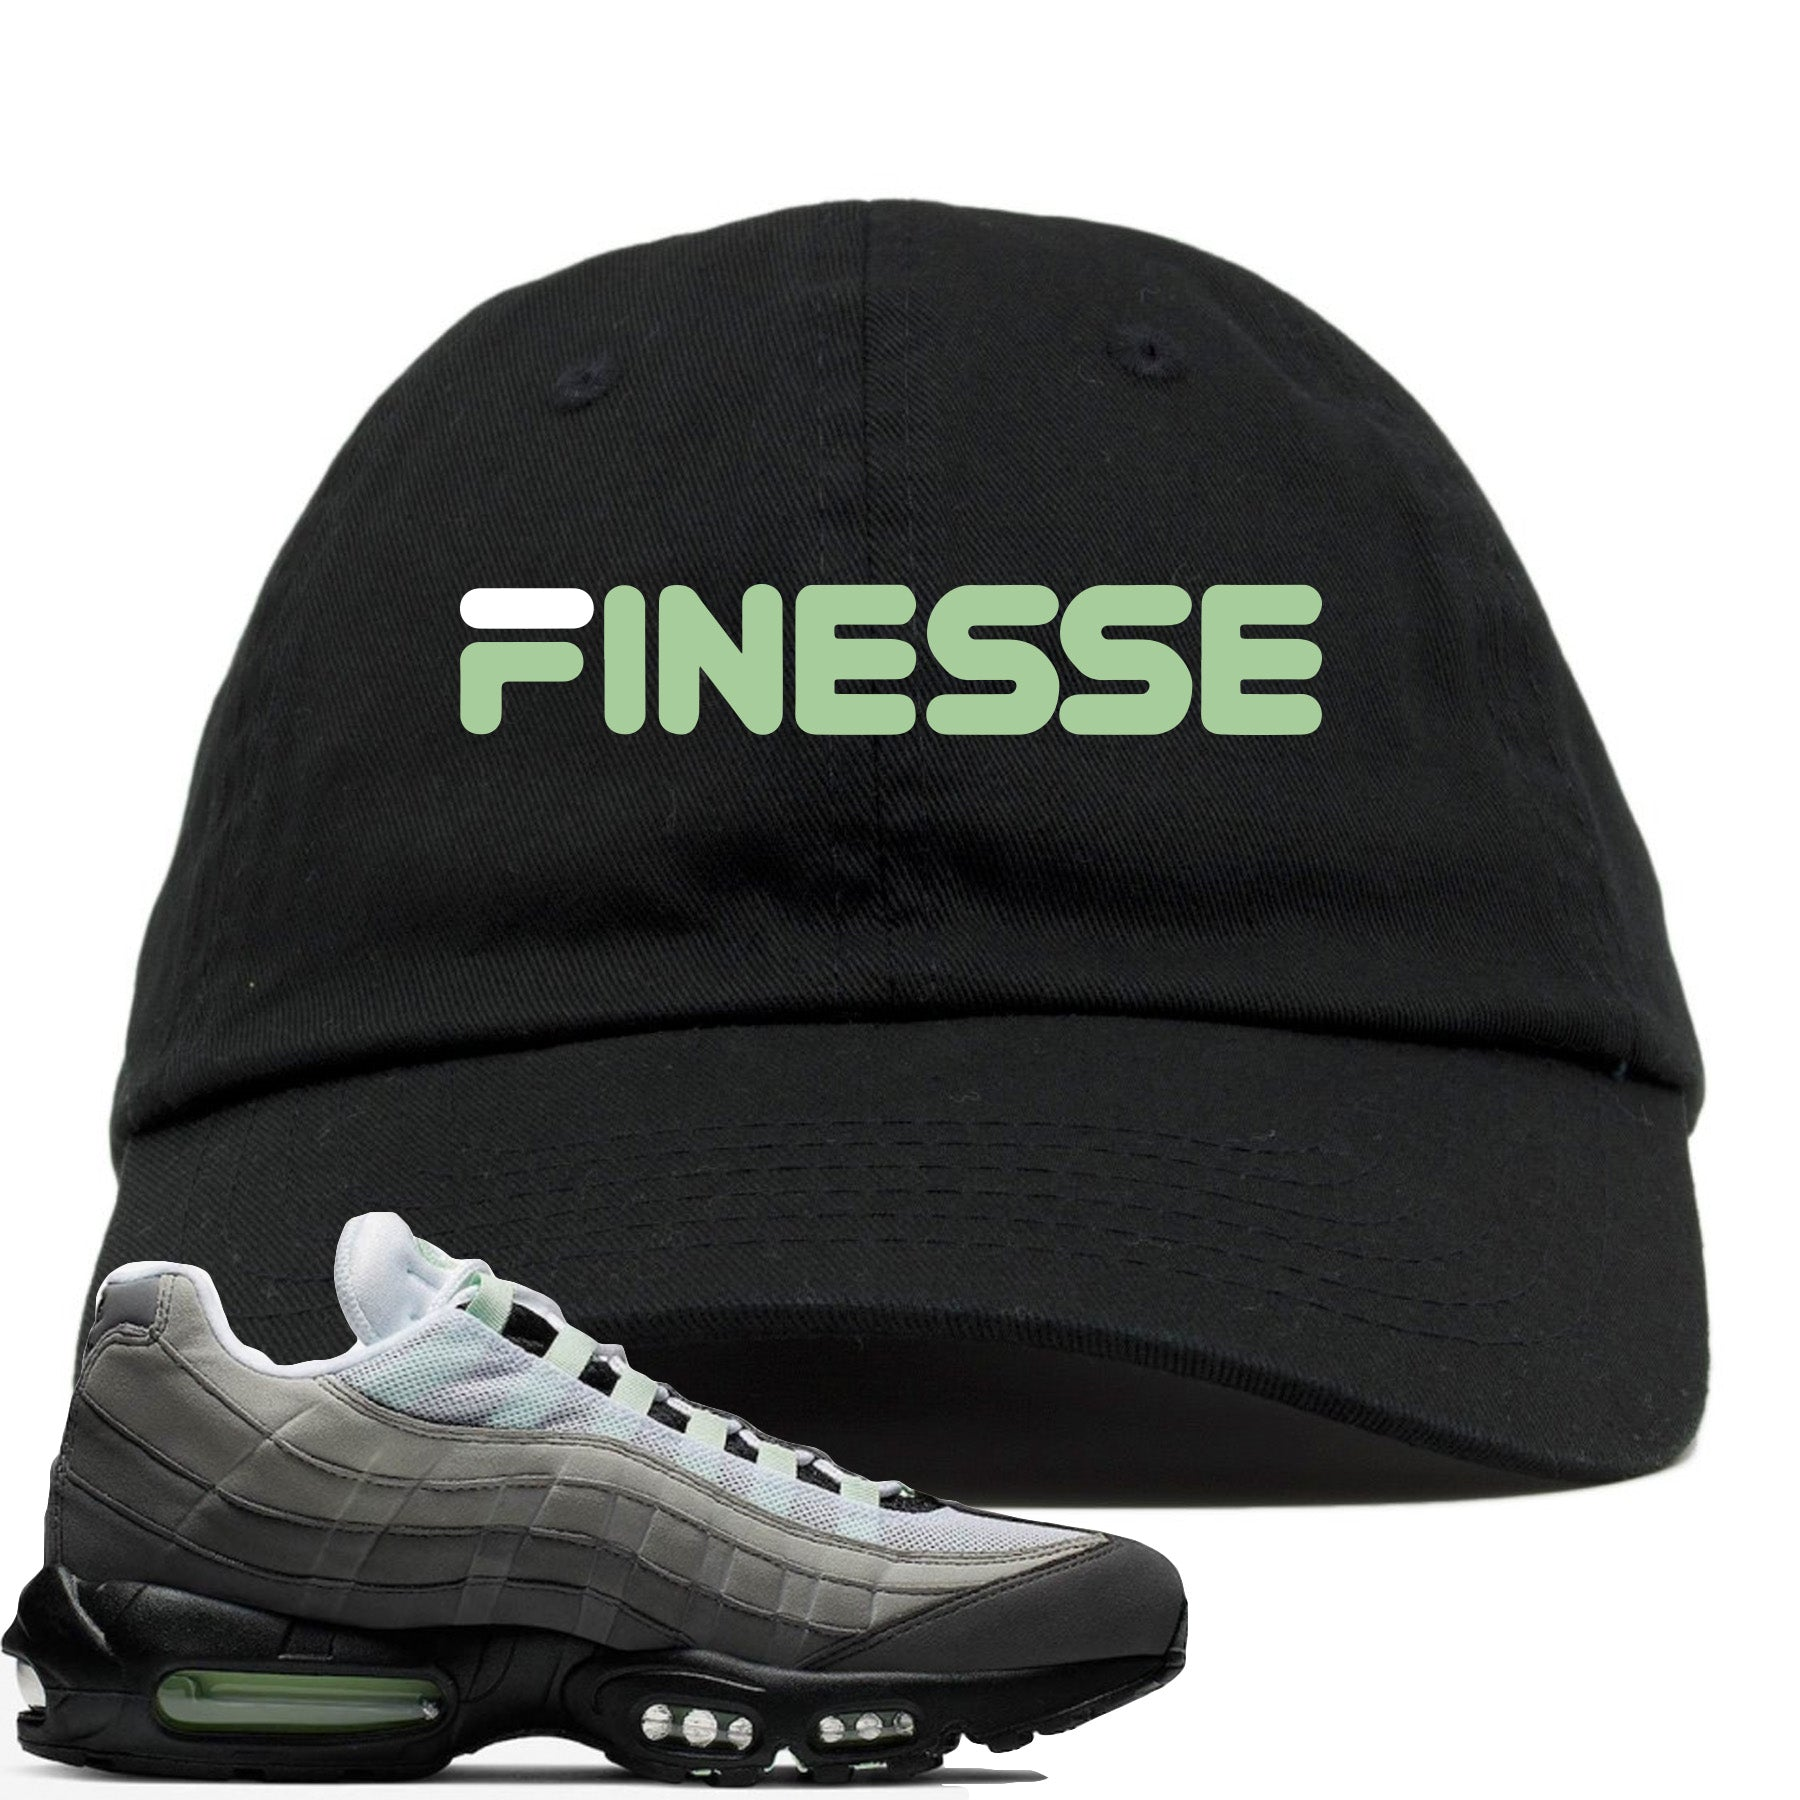 detailed look 0d543 357b4 Nike Air Max 95 Fresh Mint Sneaker Match Finesse Black Dad Hat